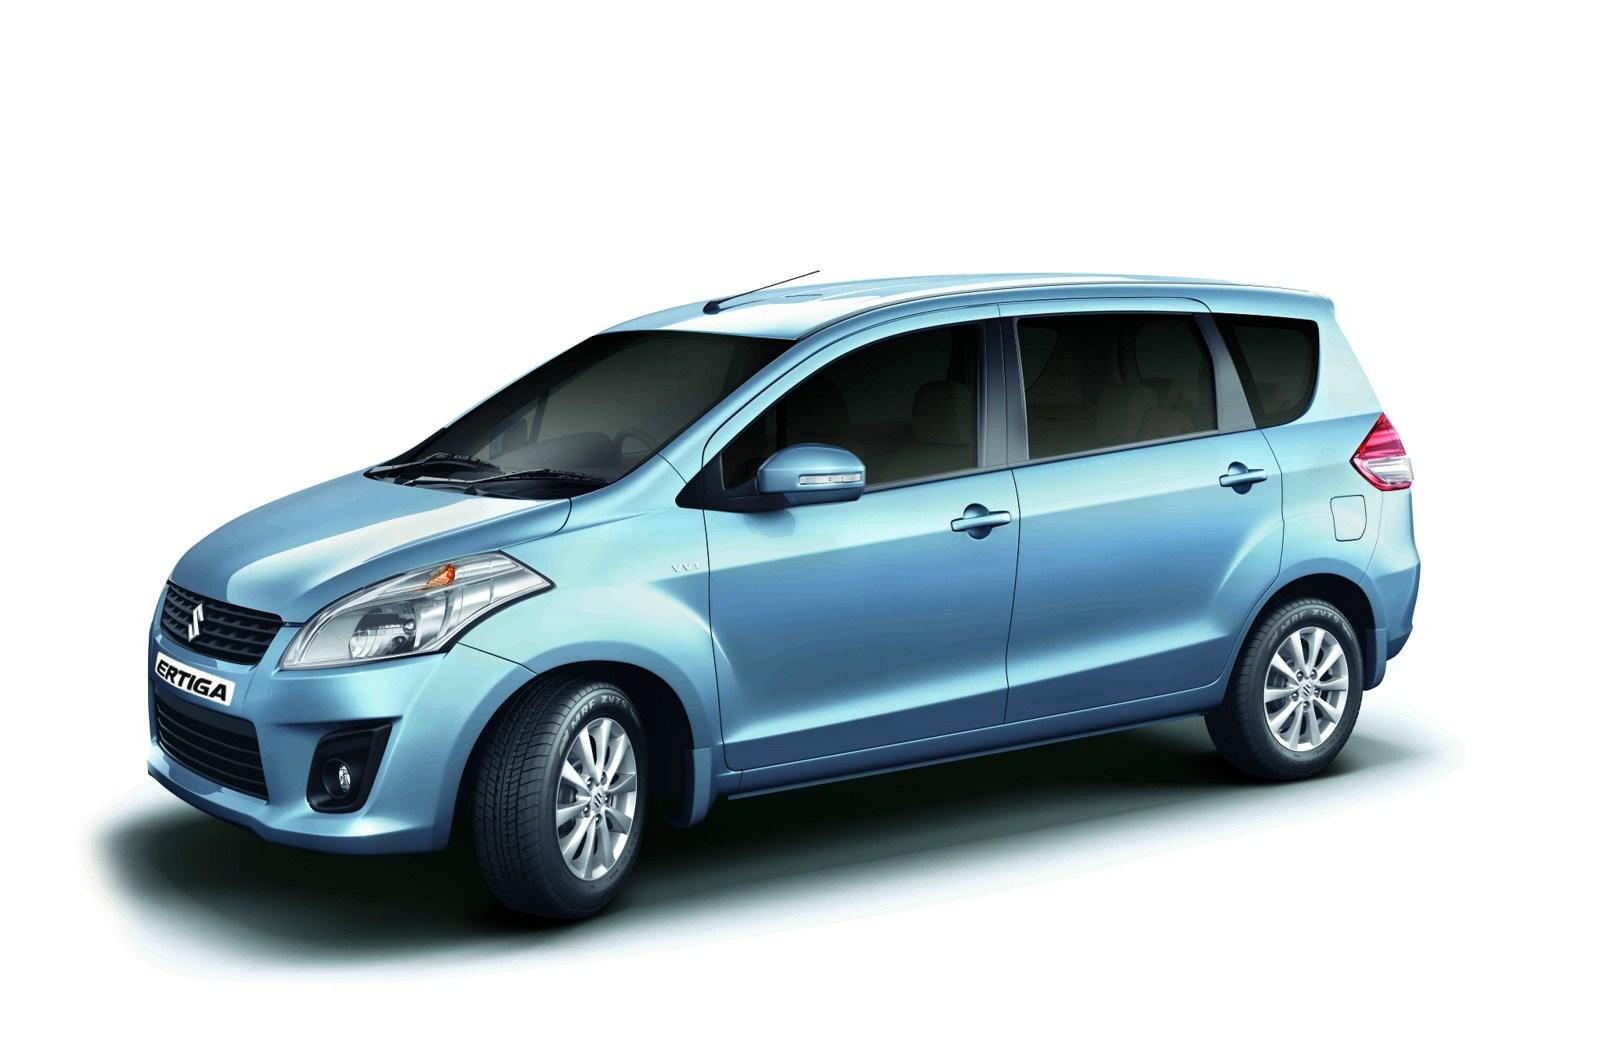 2012 Maruti Suzuki Ertiga Lengthened Suzuki Swift becomes Maruti Ertiga